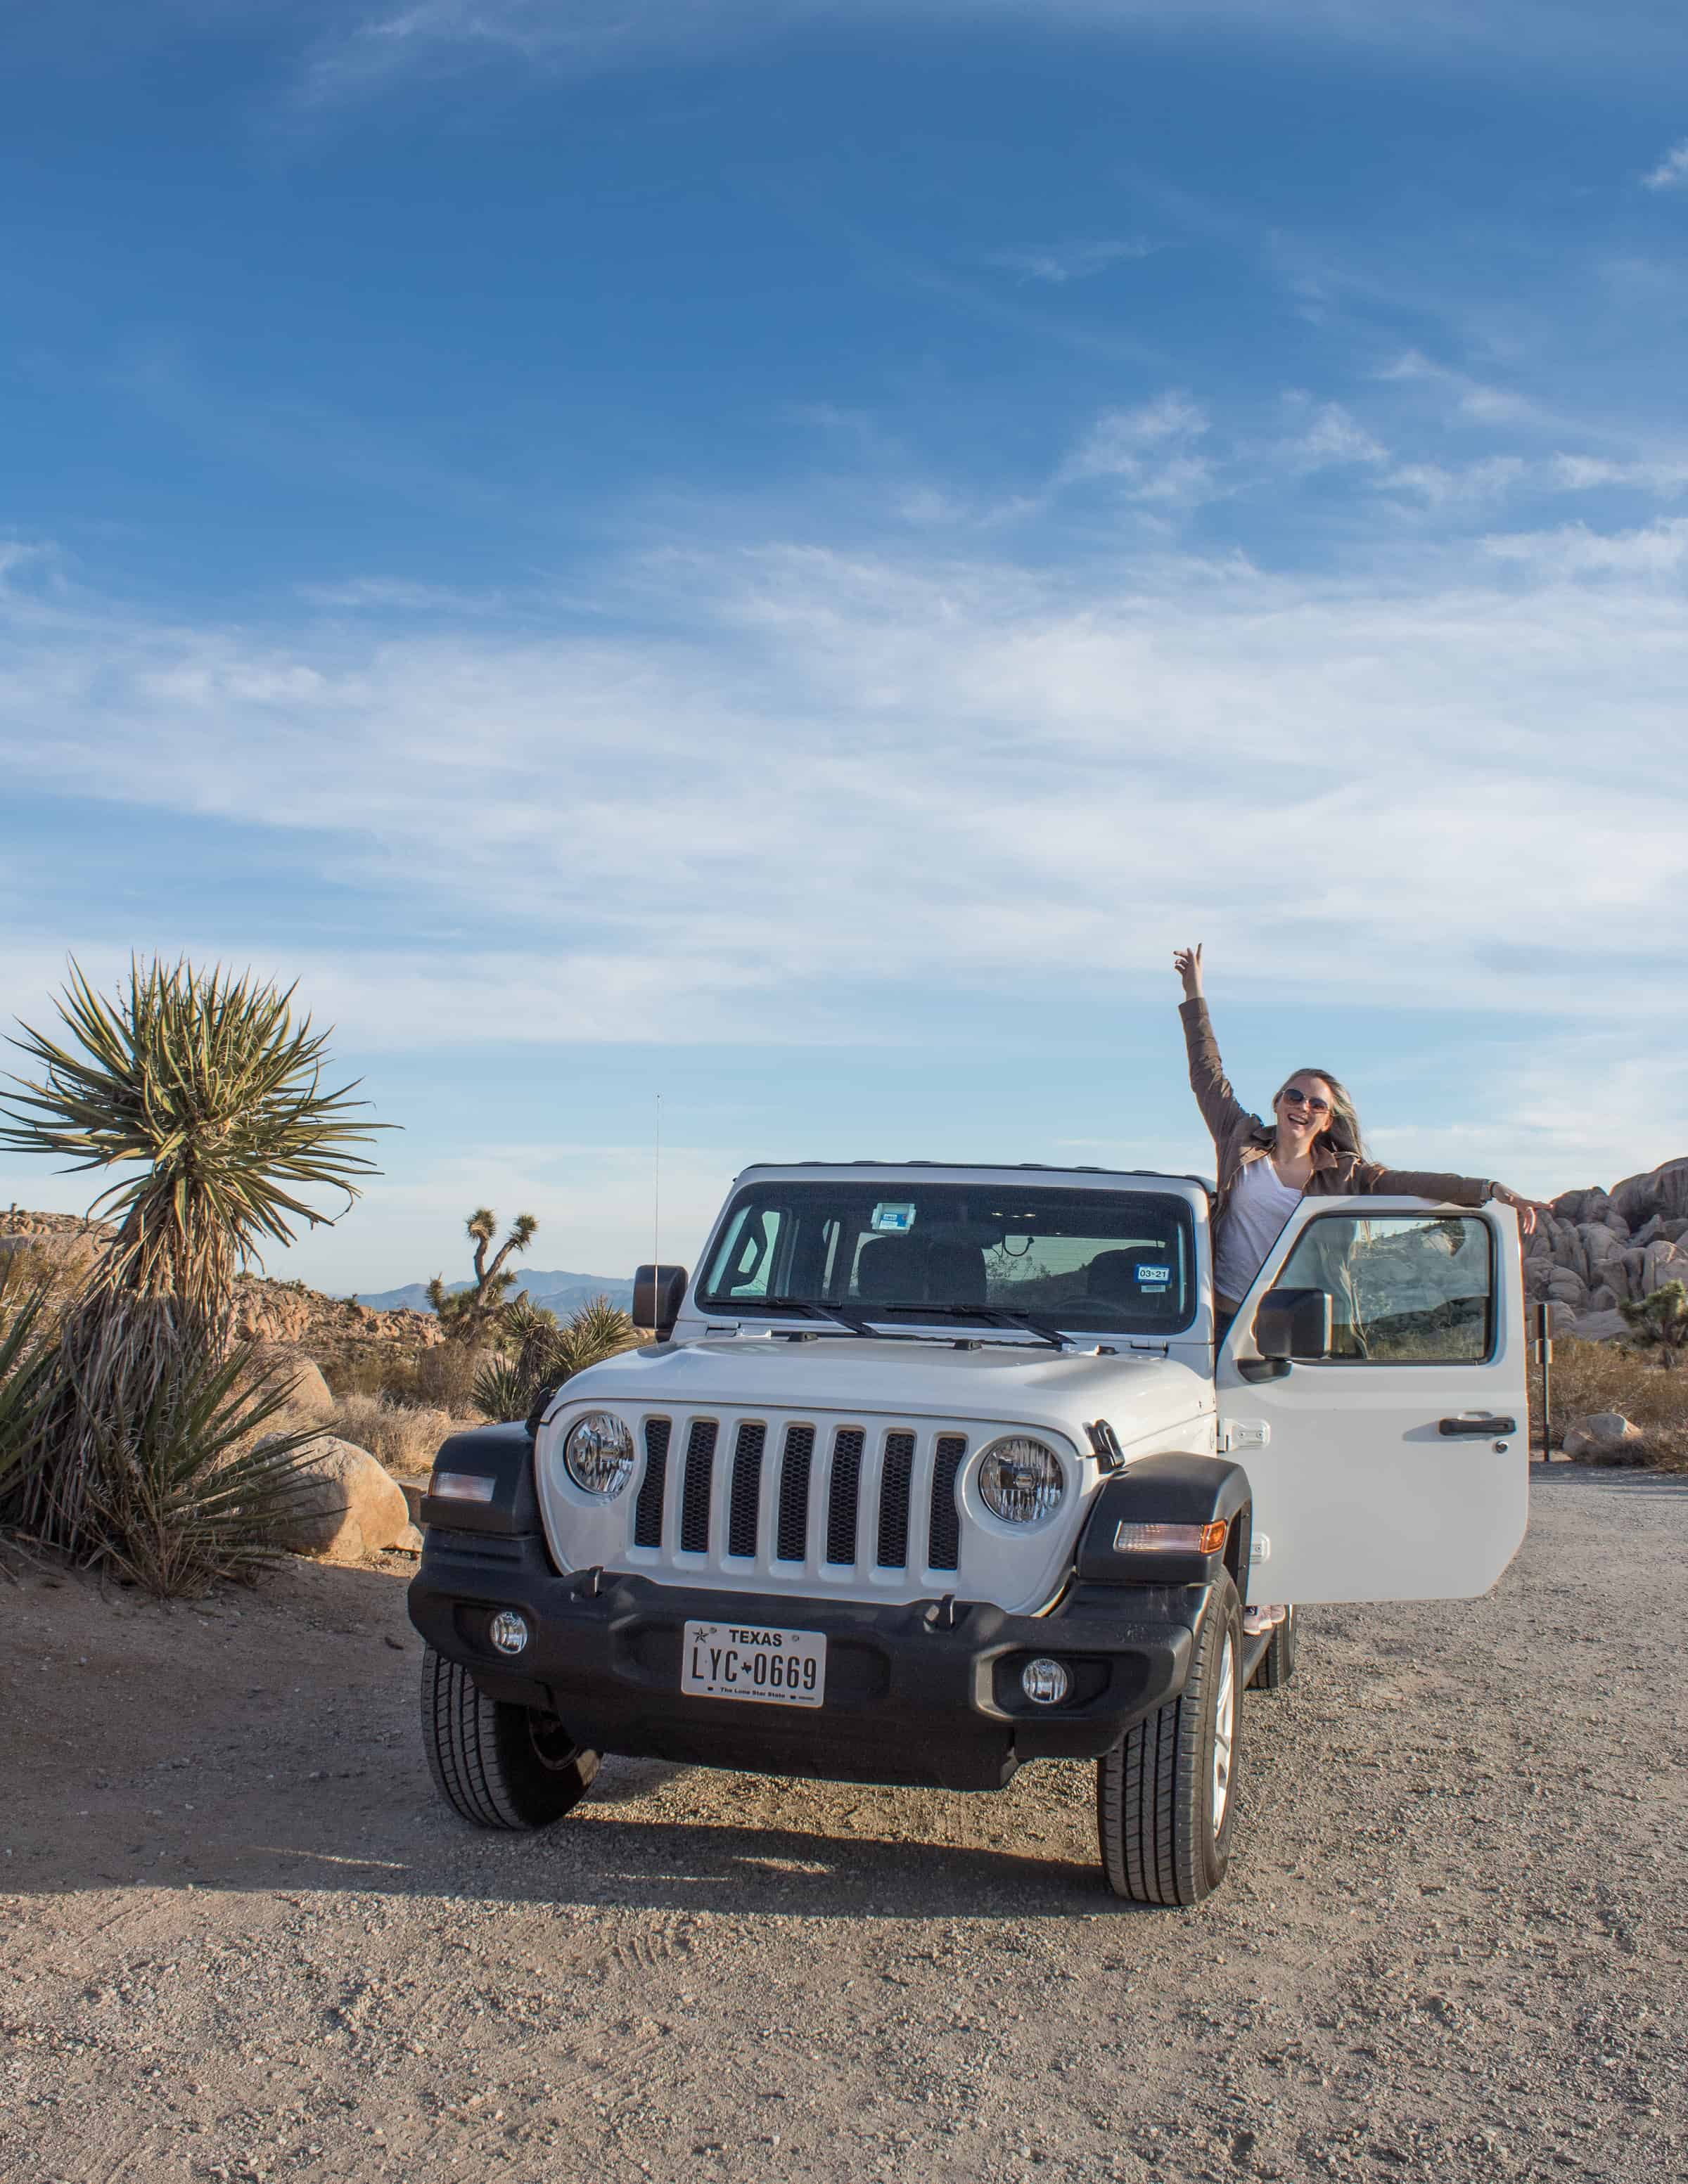 Me with white Jeep in Joshua Tree National Park